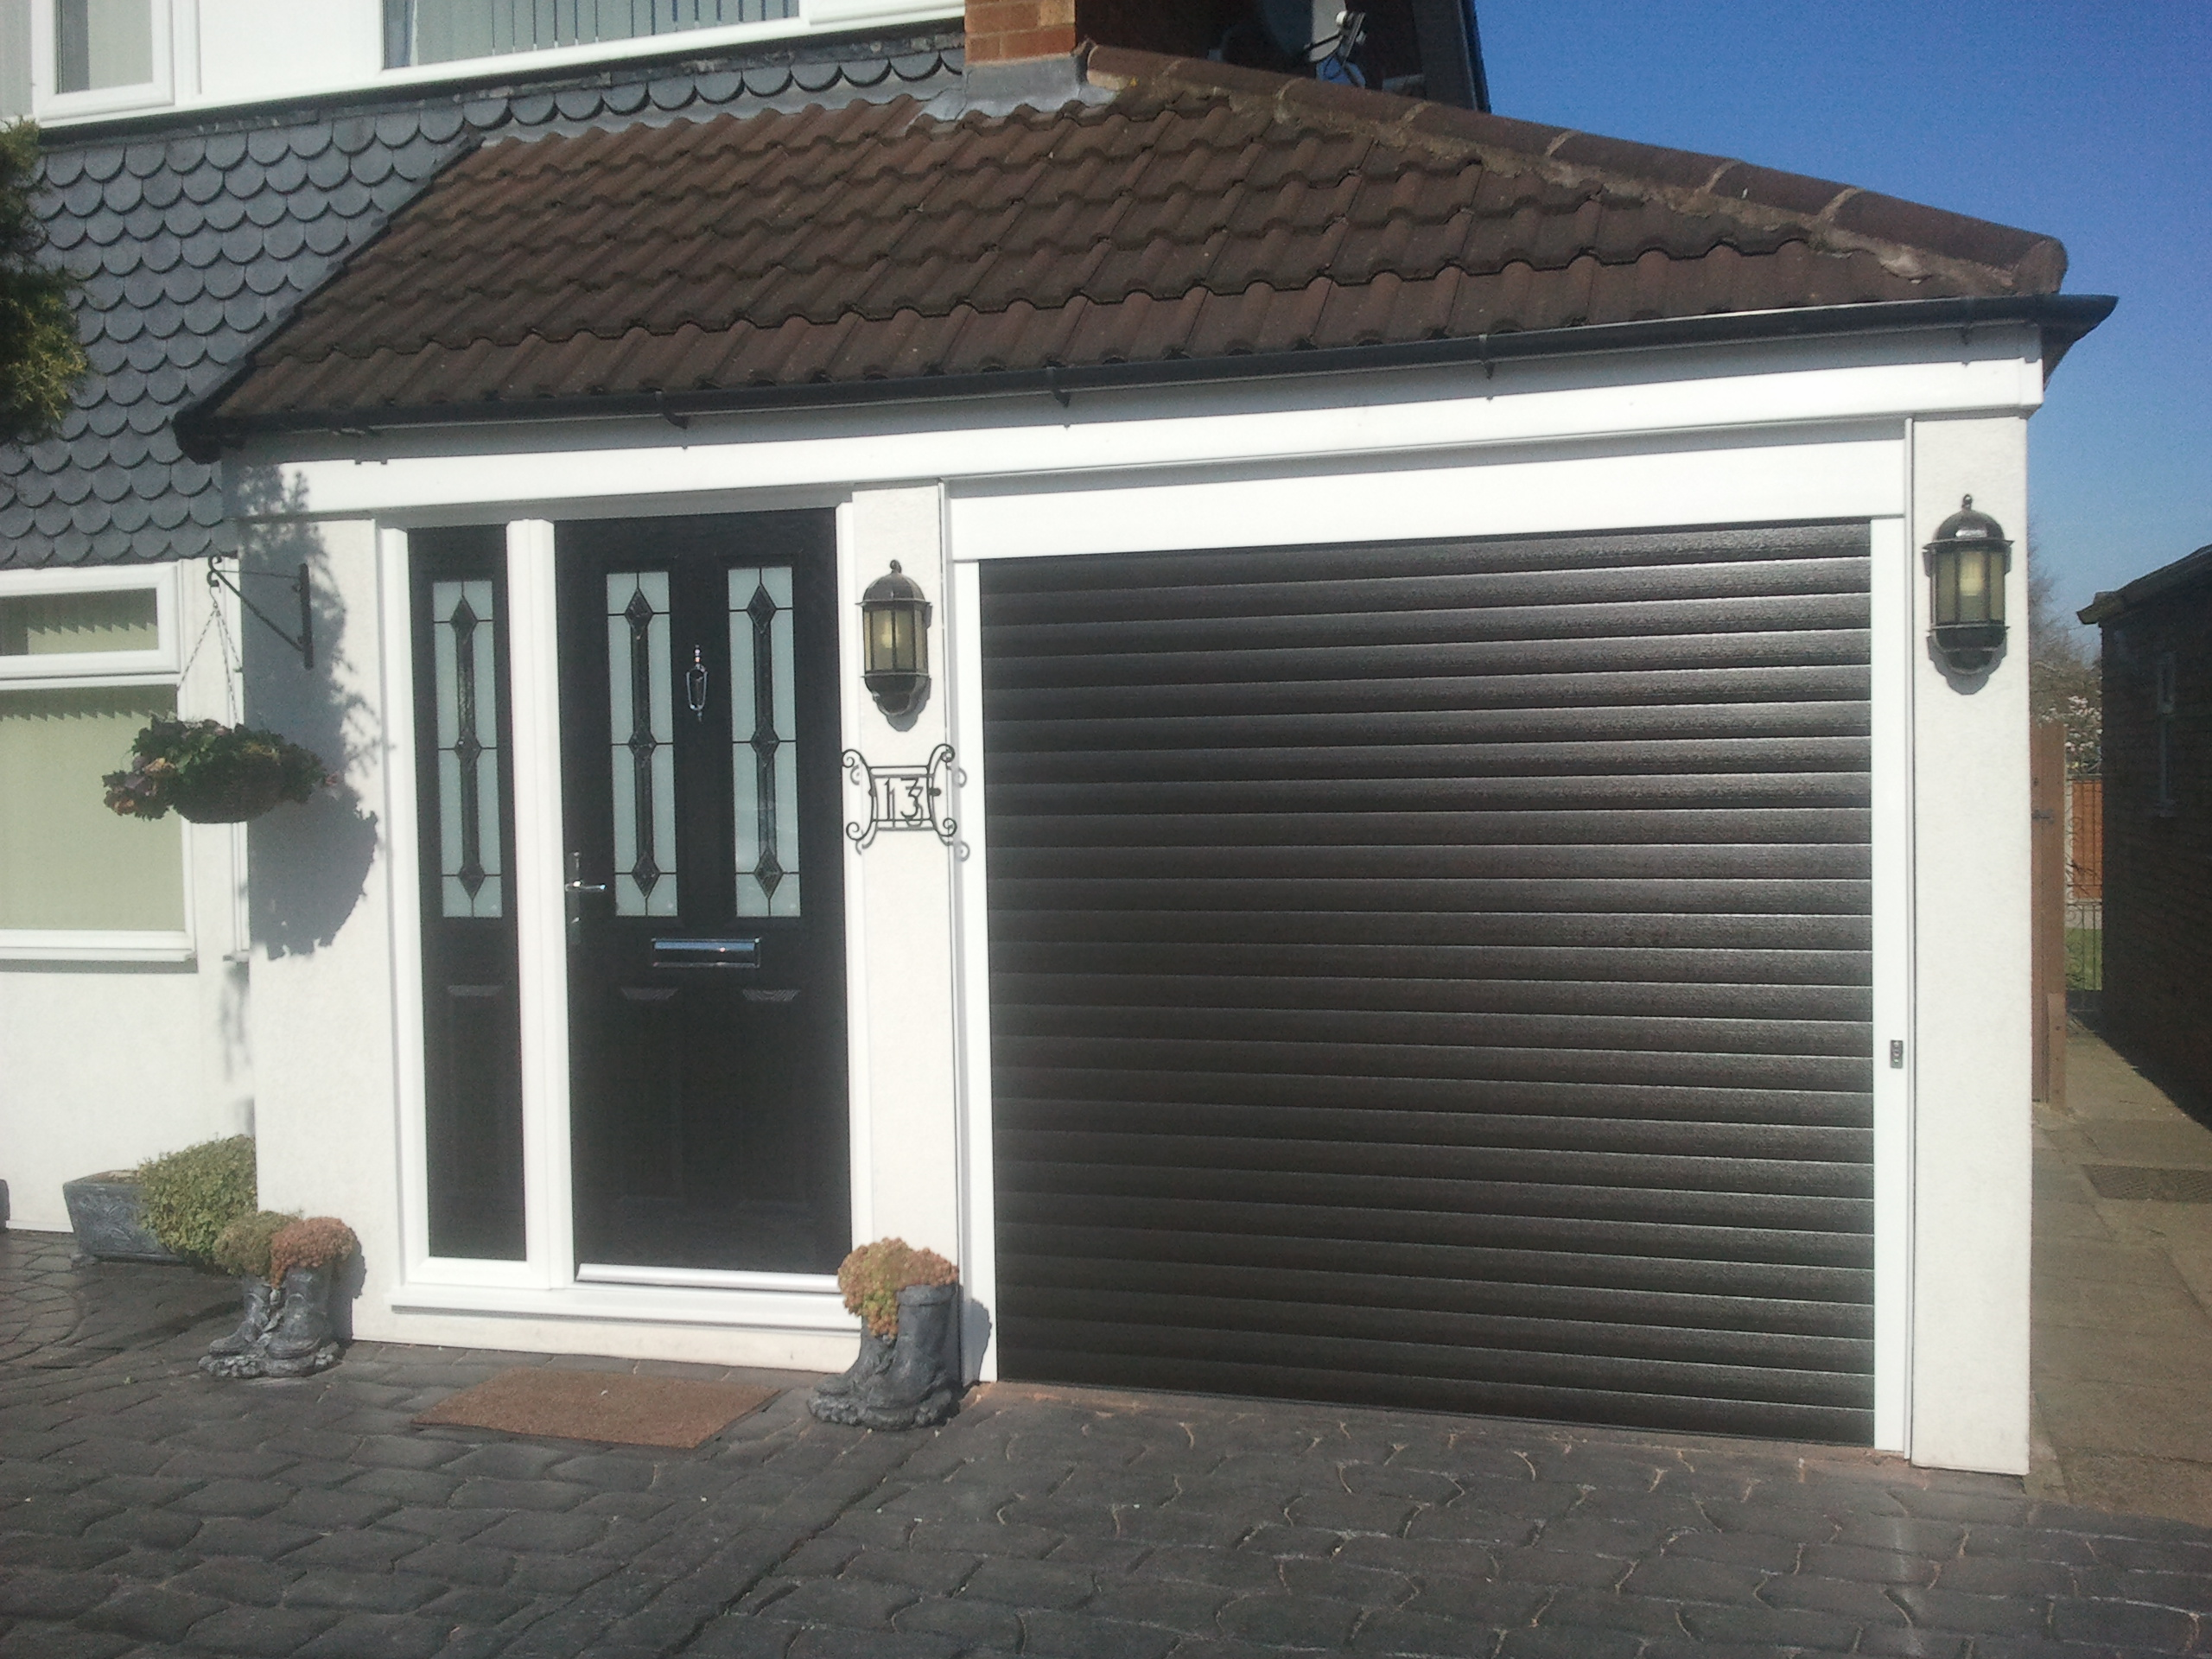 1920 #3C5F8F Below Are Some Samples Of Installations We Have Carried Out: pic Black Steel Garage Doors 36512560